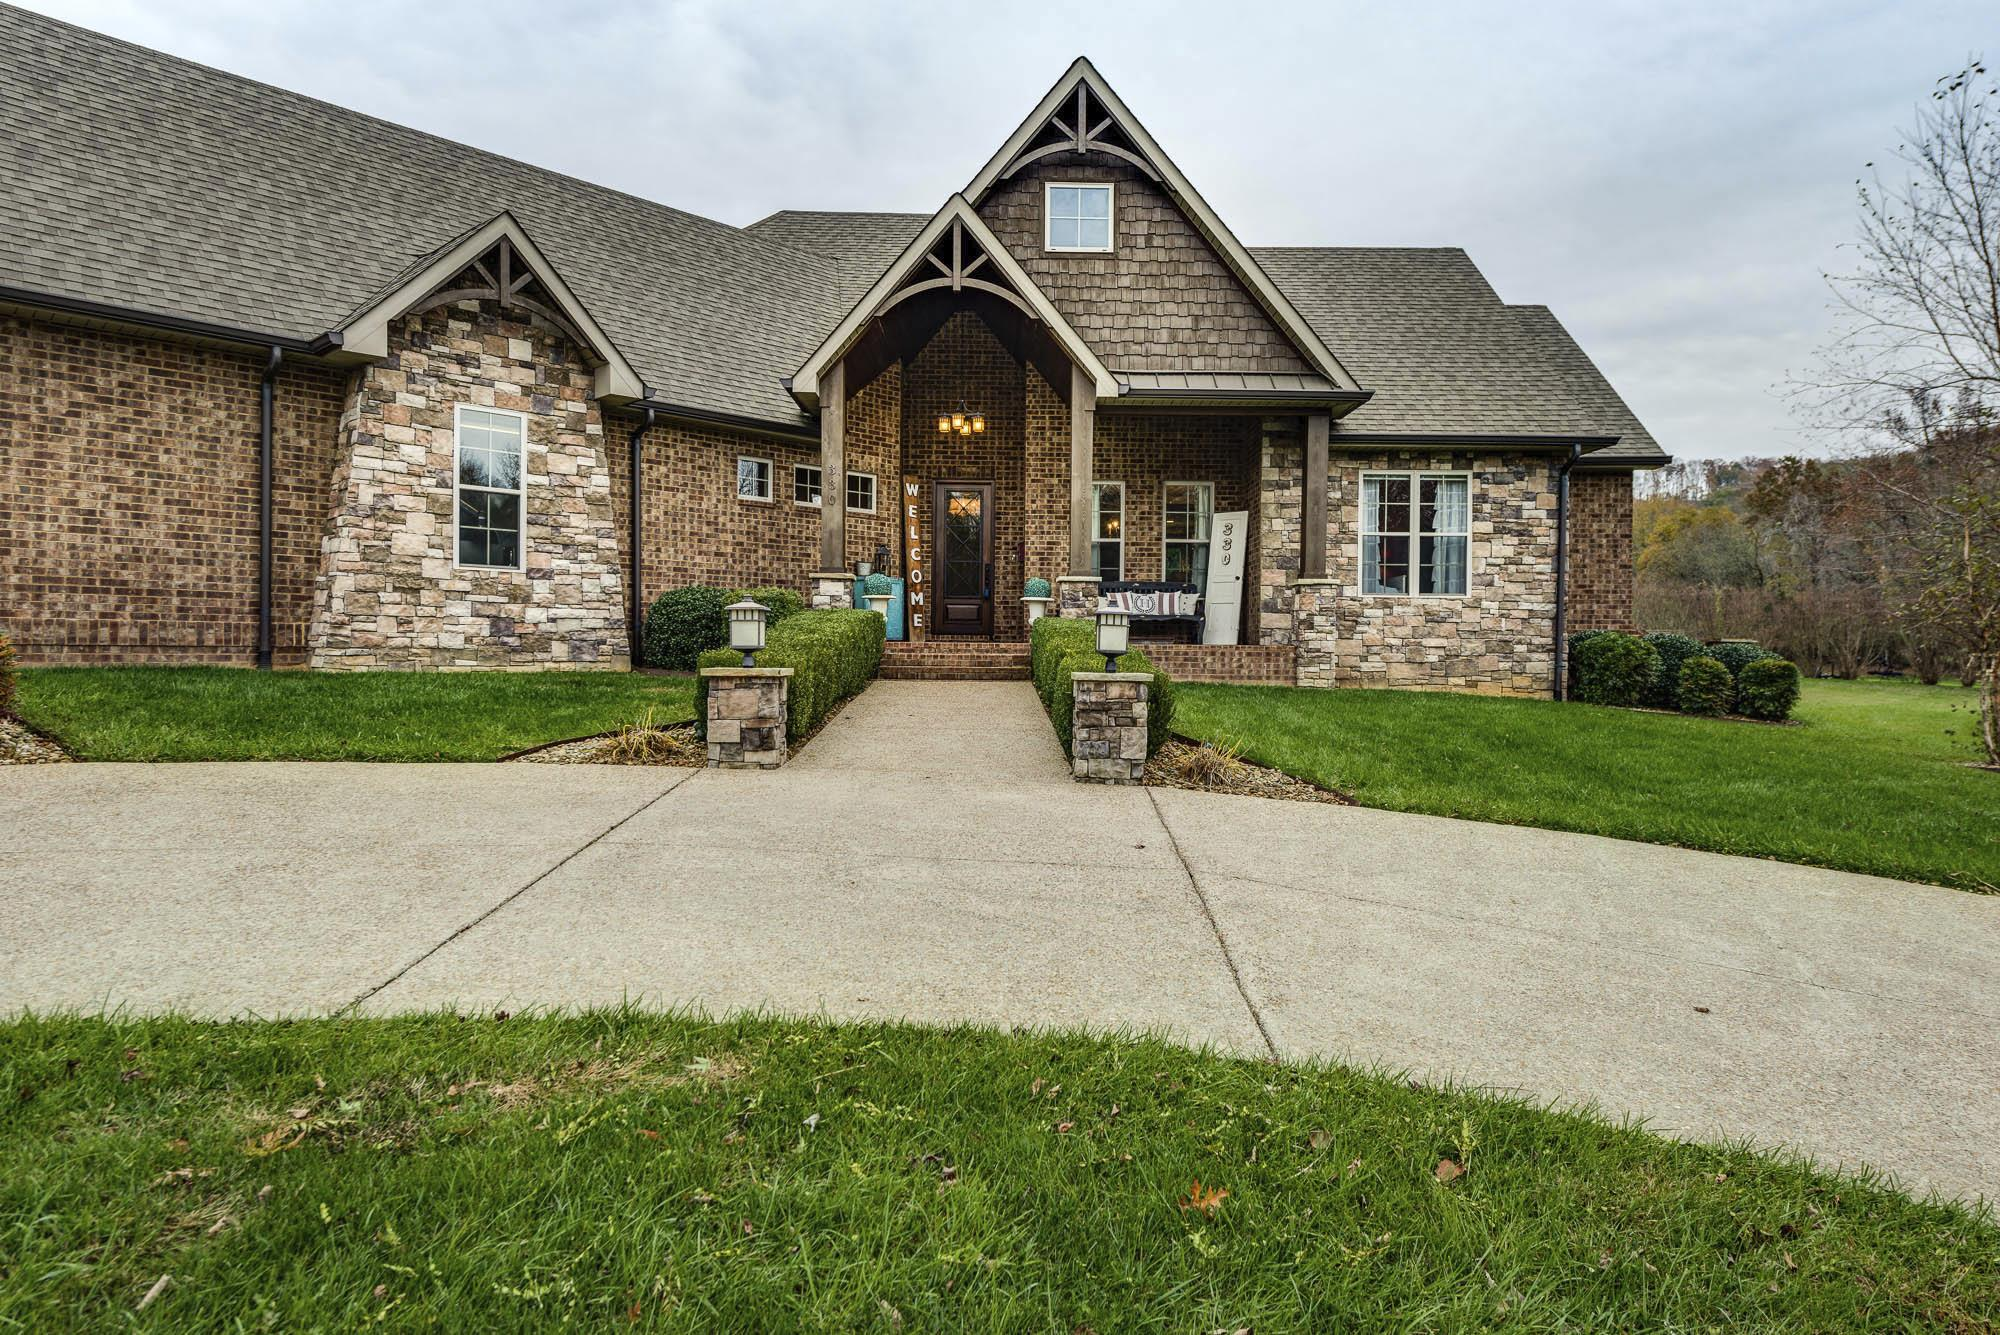 330 New Heritage Dr, Cookeville, TN 38506 - Cookeville, TN real estate listing